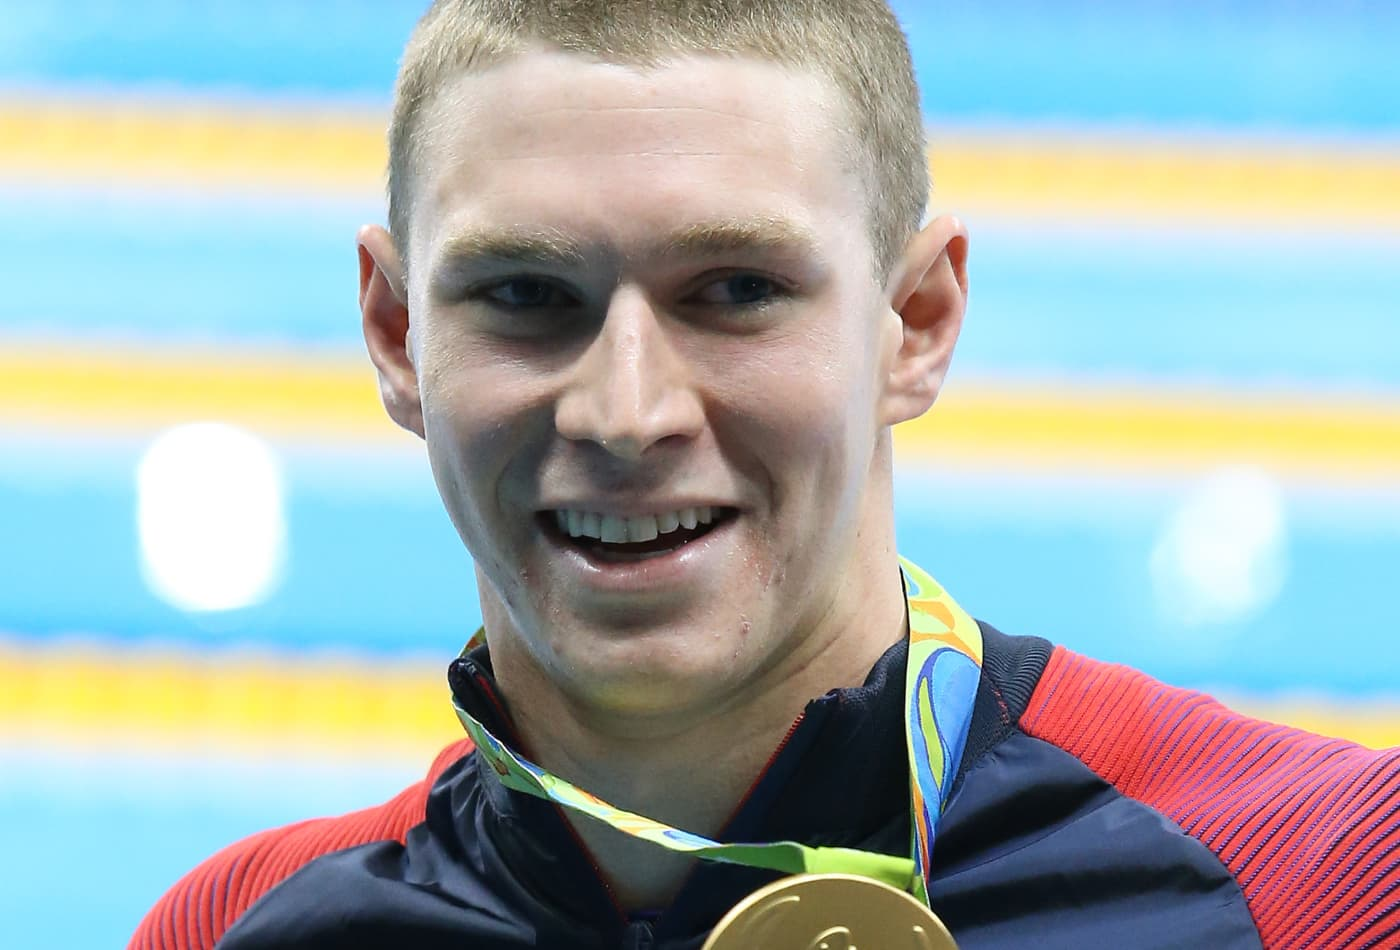 3-time Olympic gold medalist Ryan Murphy shares the lasting investing lesson he learned when he was 13